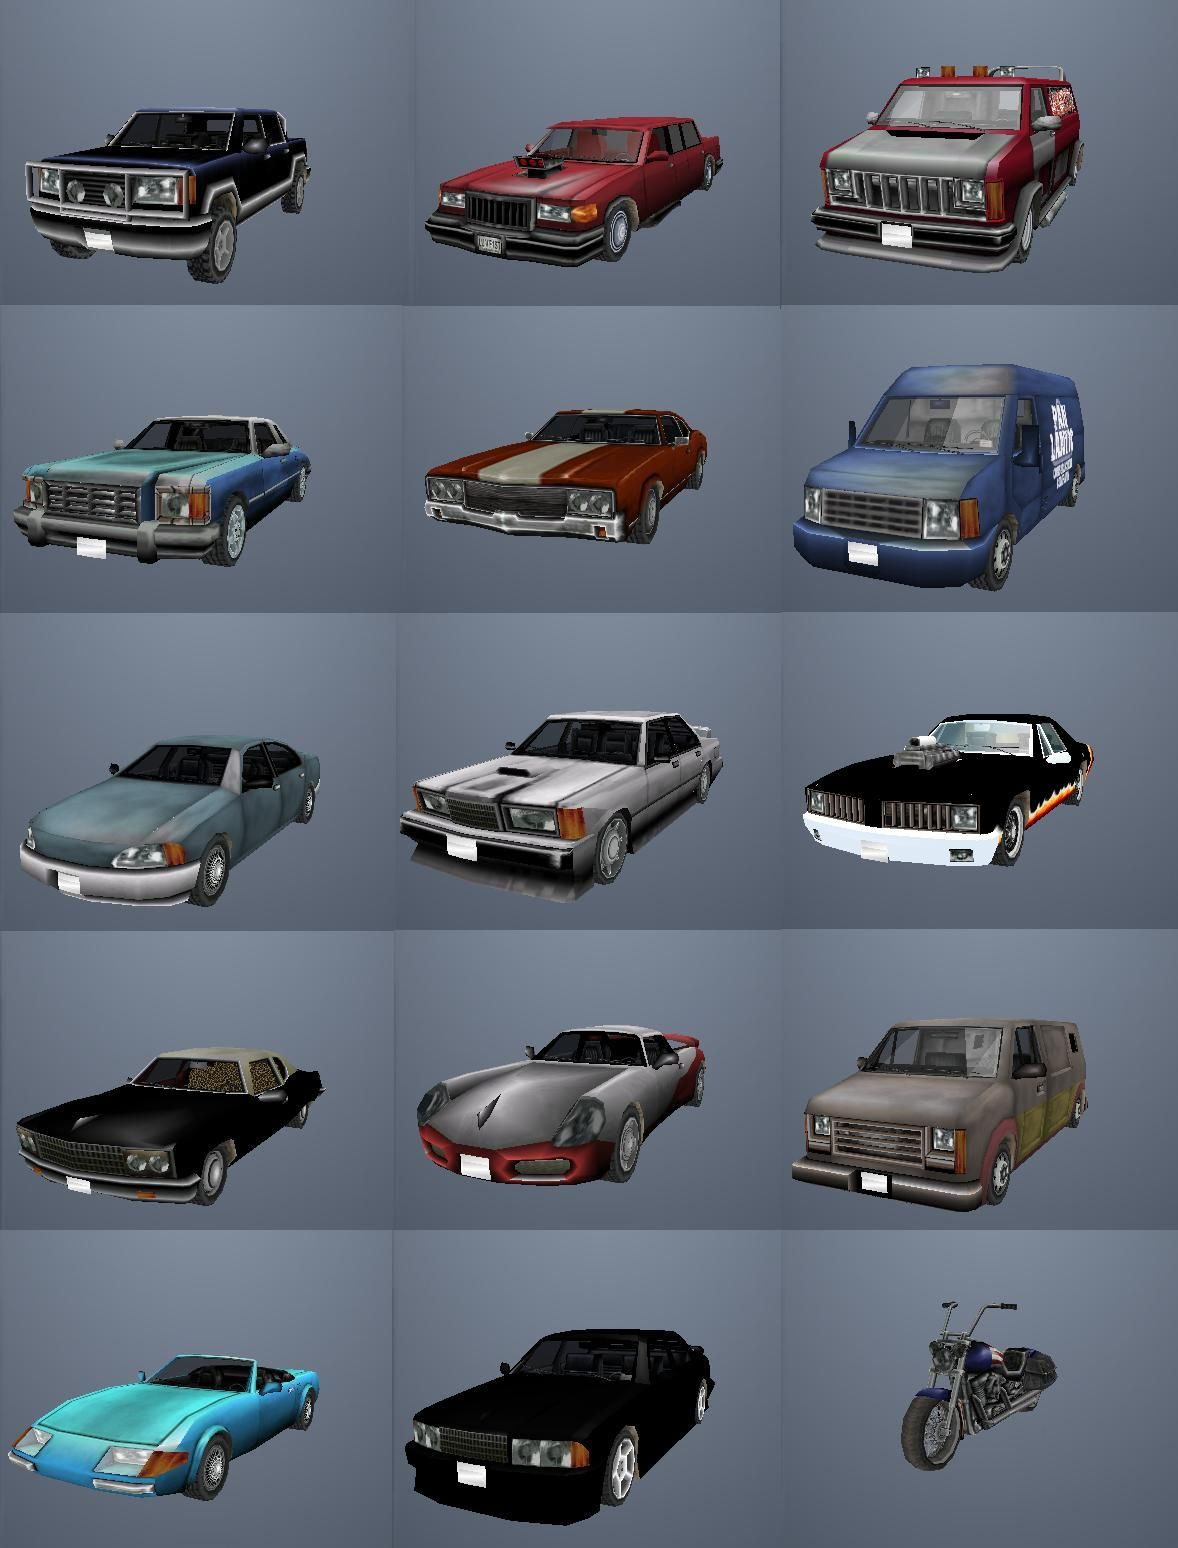 gta-san-andreas-car-mods.jpg (1178×1548) | car | Pinterest ...